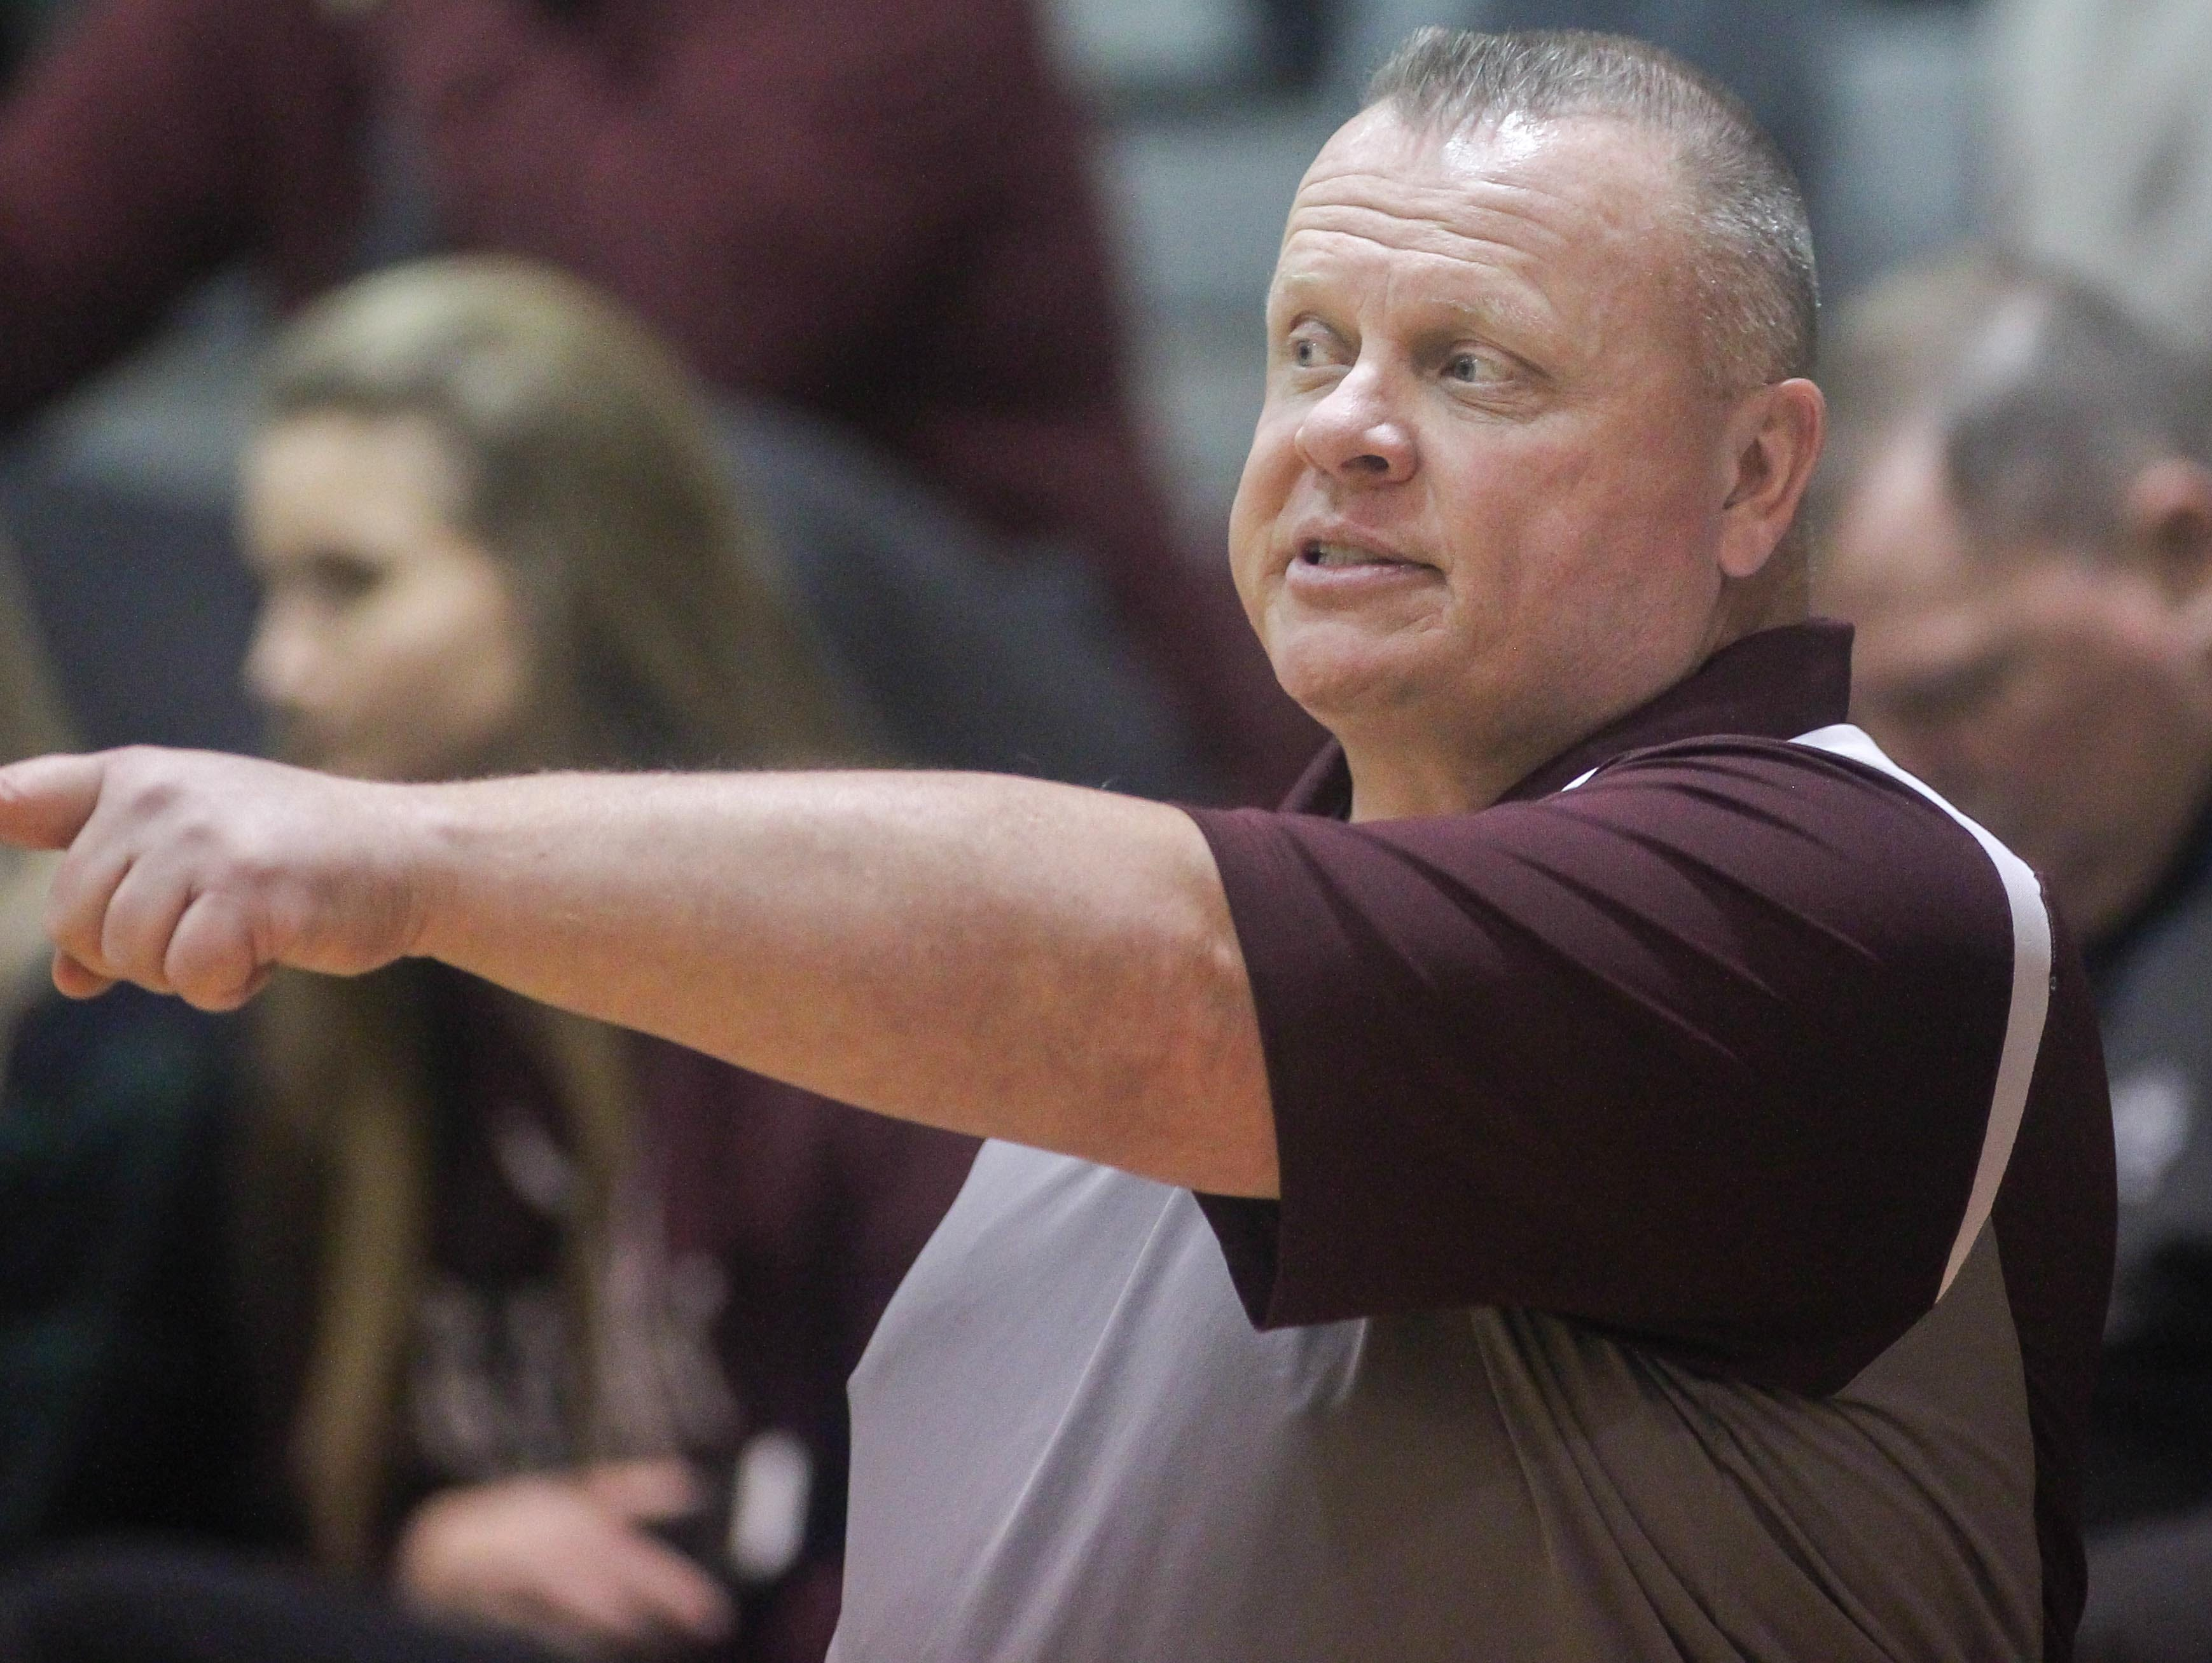 Mark Tobin and No. 19 Caravel pulled off the upset of No. 3 Salesianum in the DIAA boys basketball tournament.